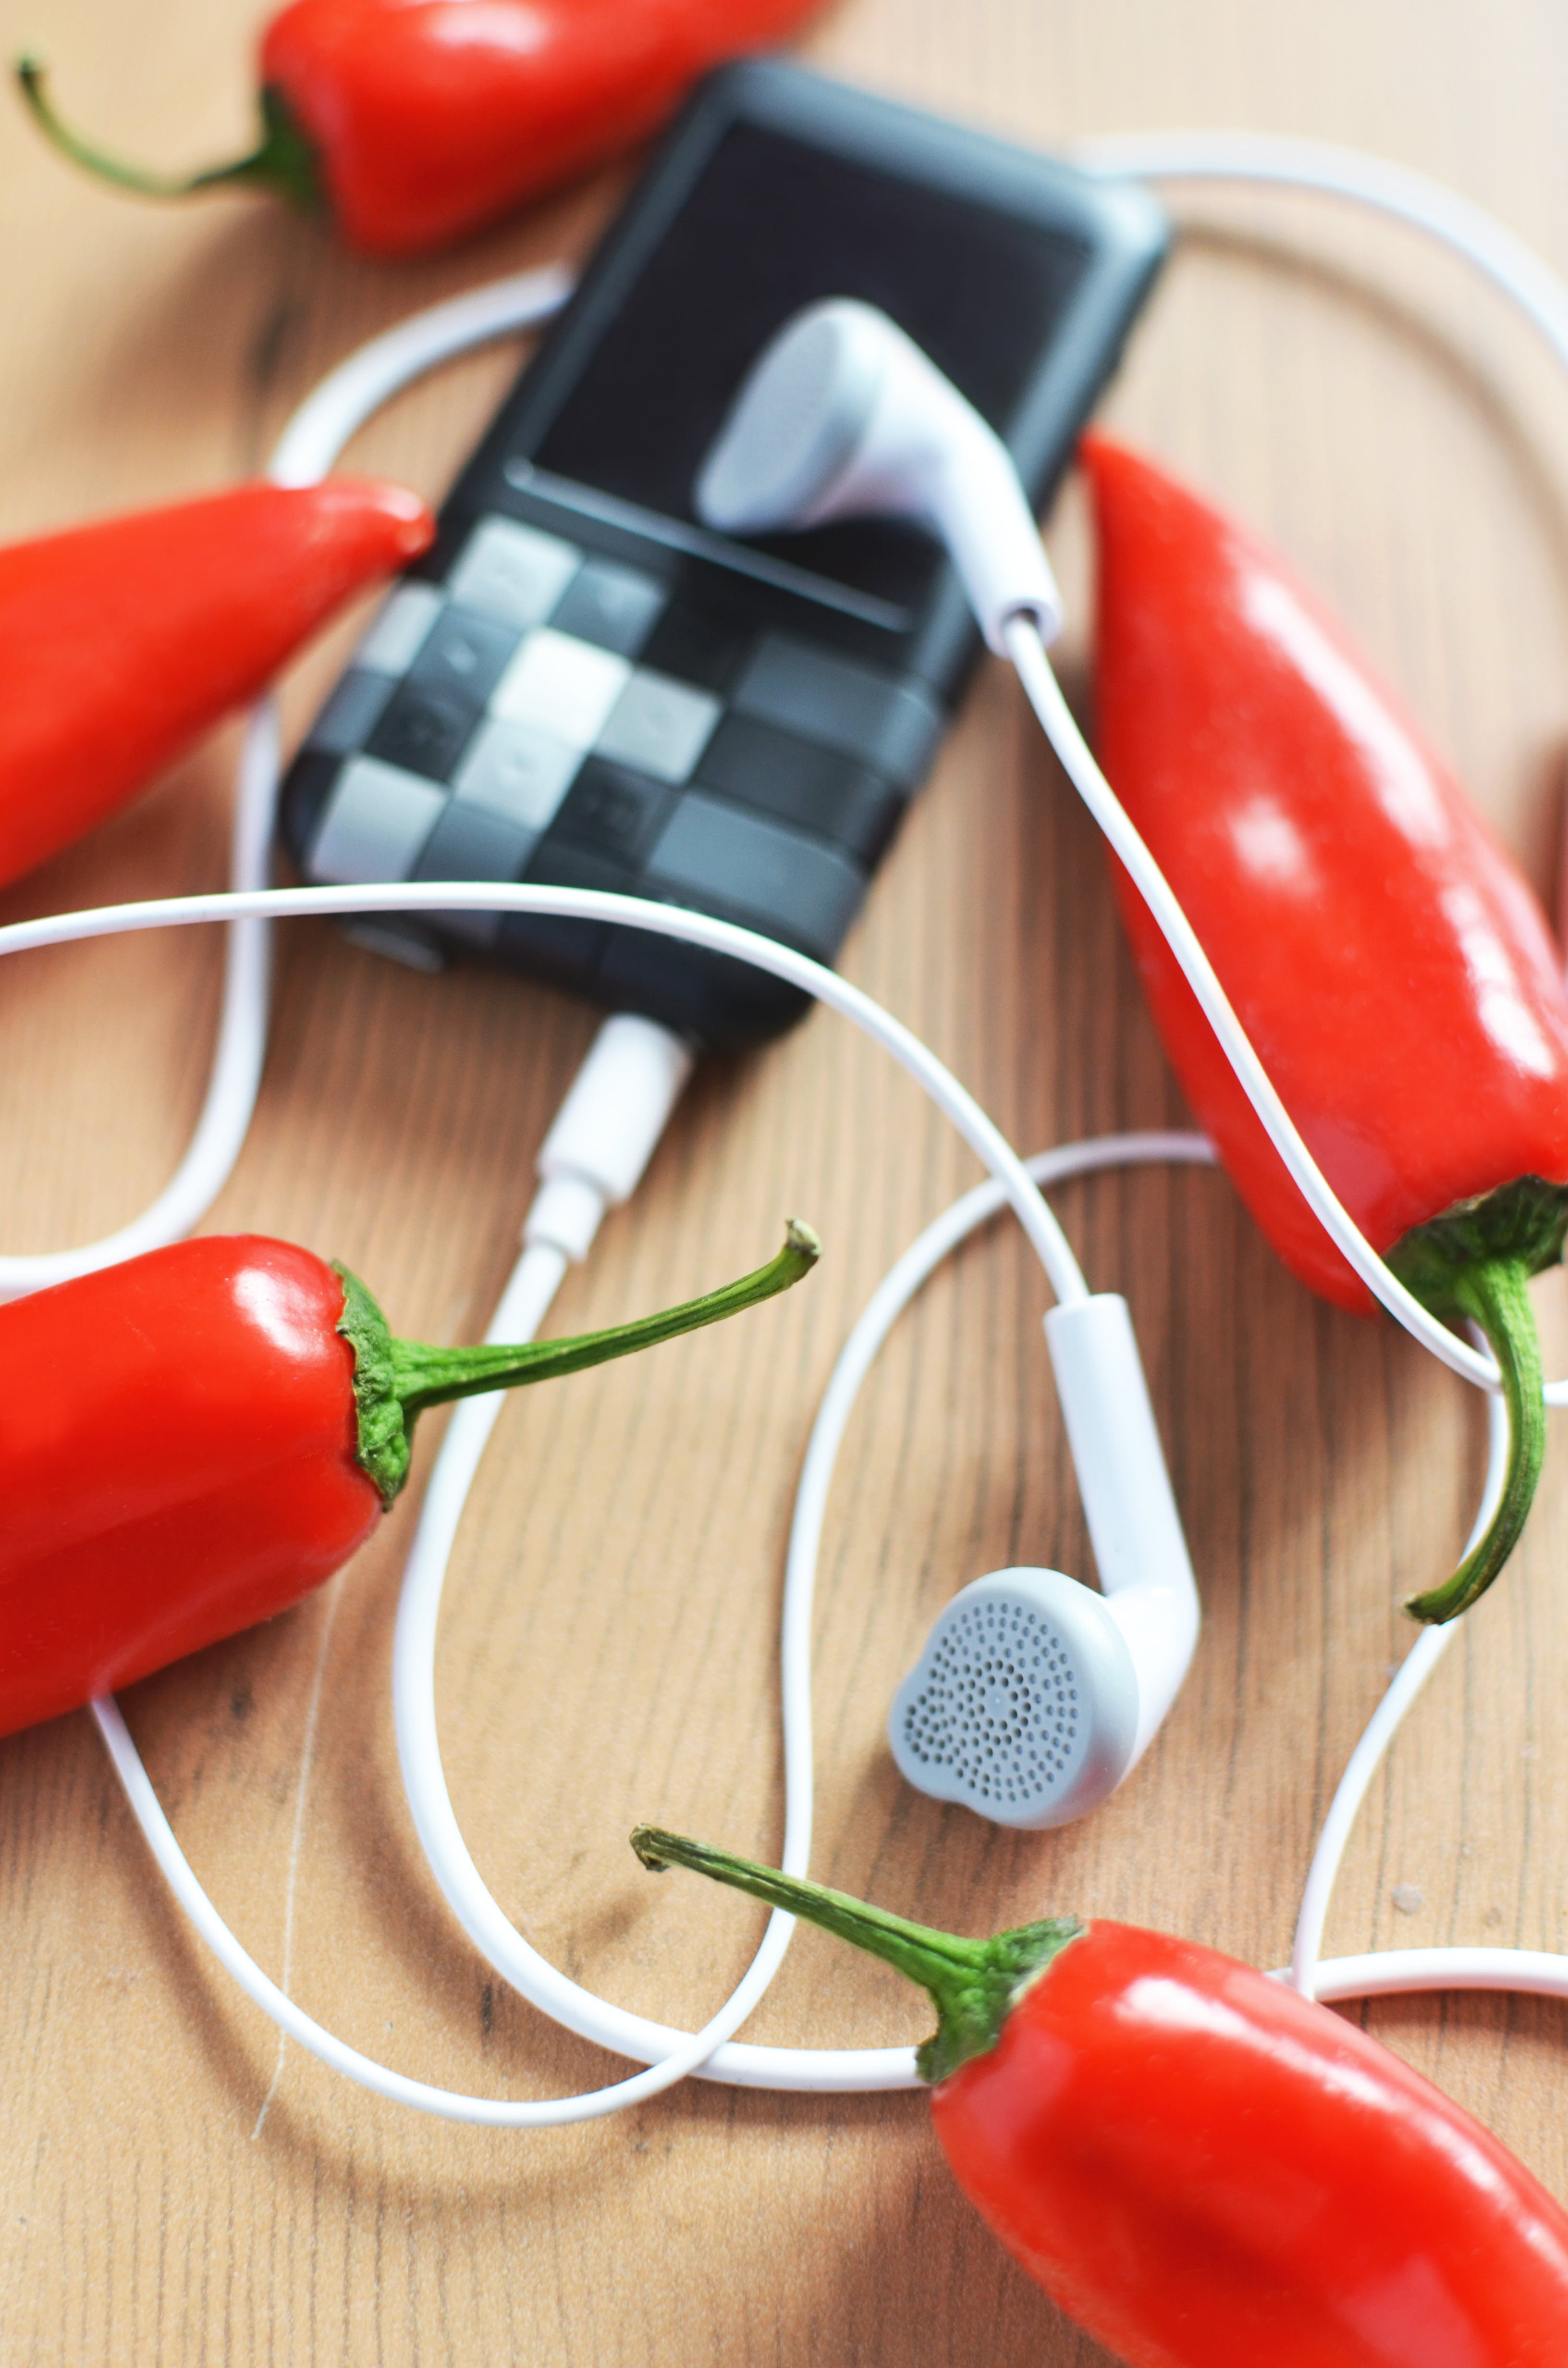 Free stock photo of music player, chillies